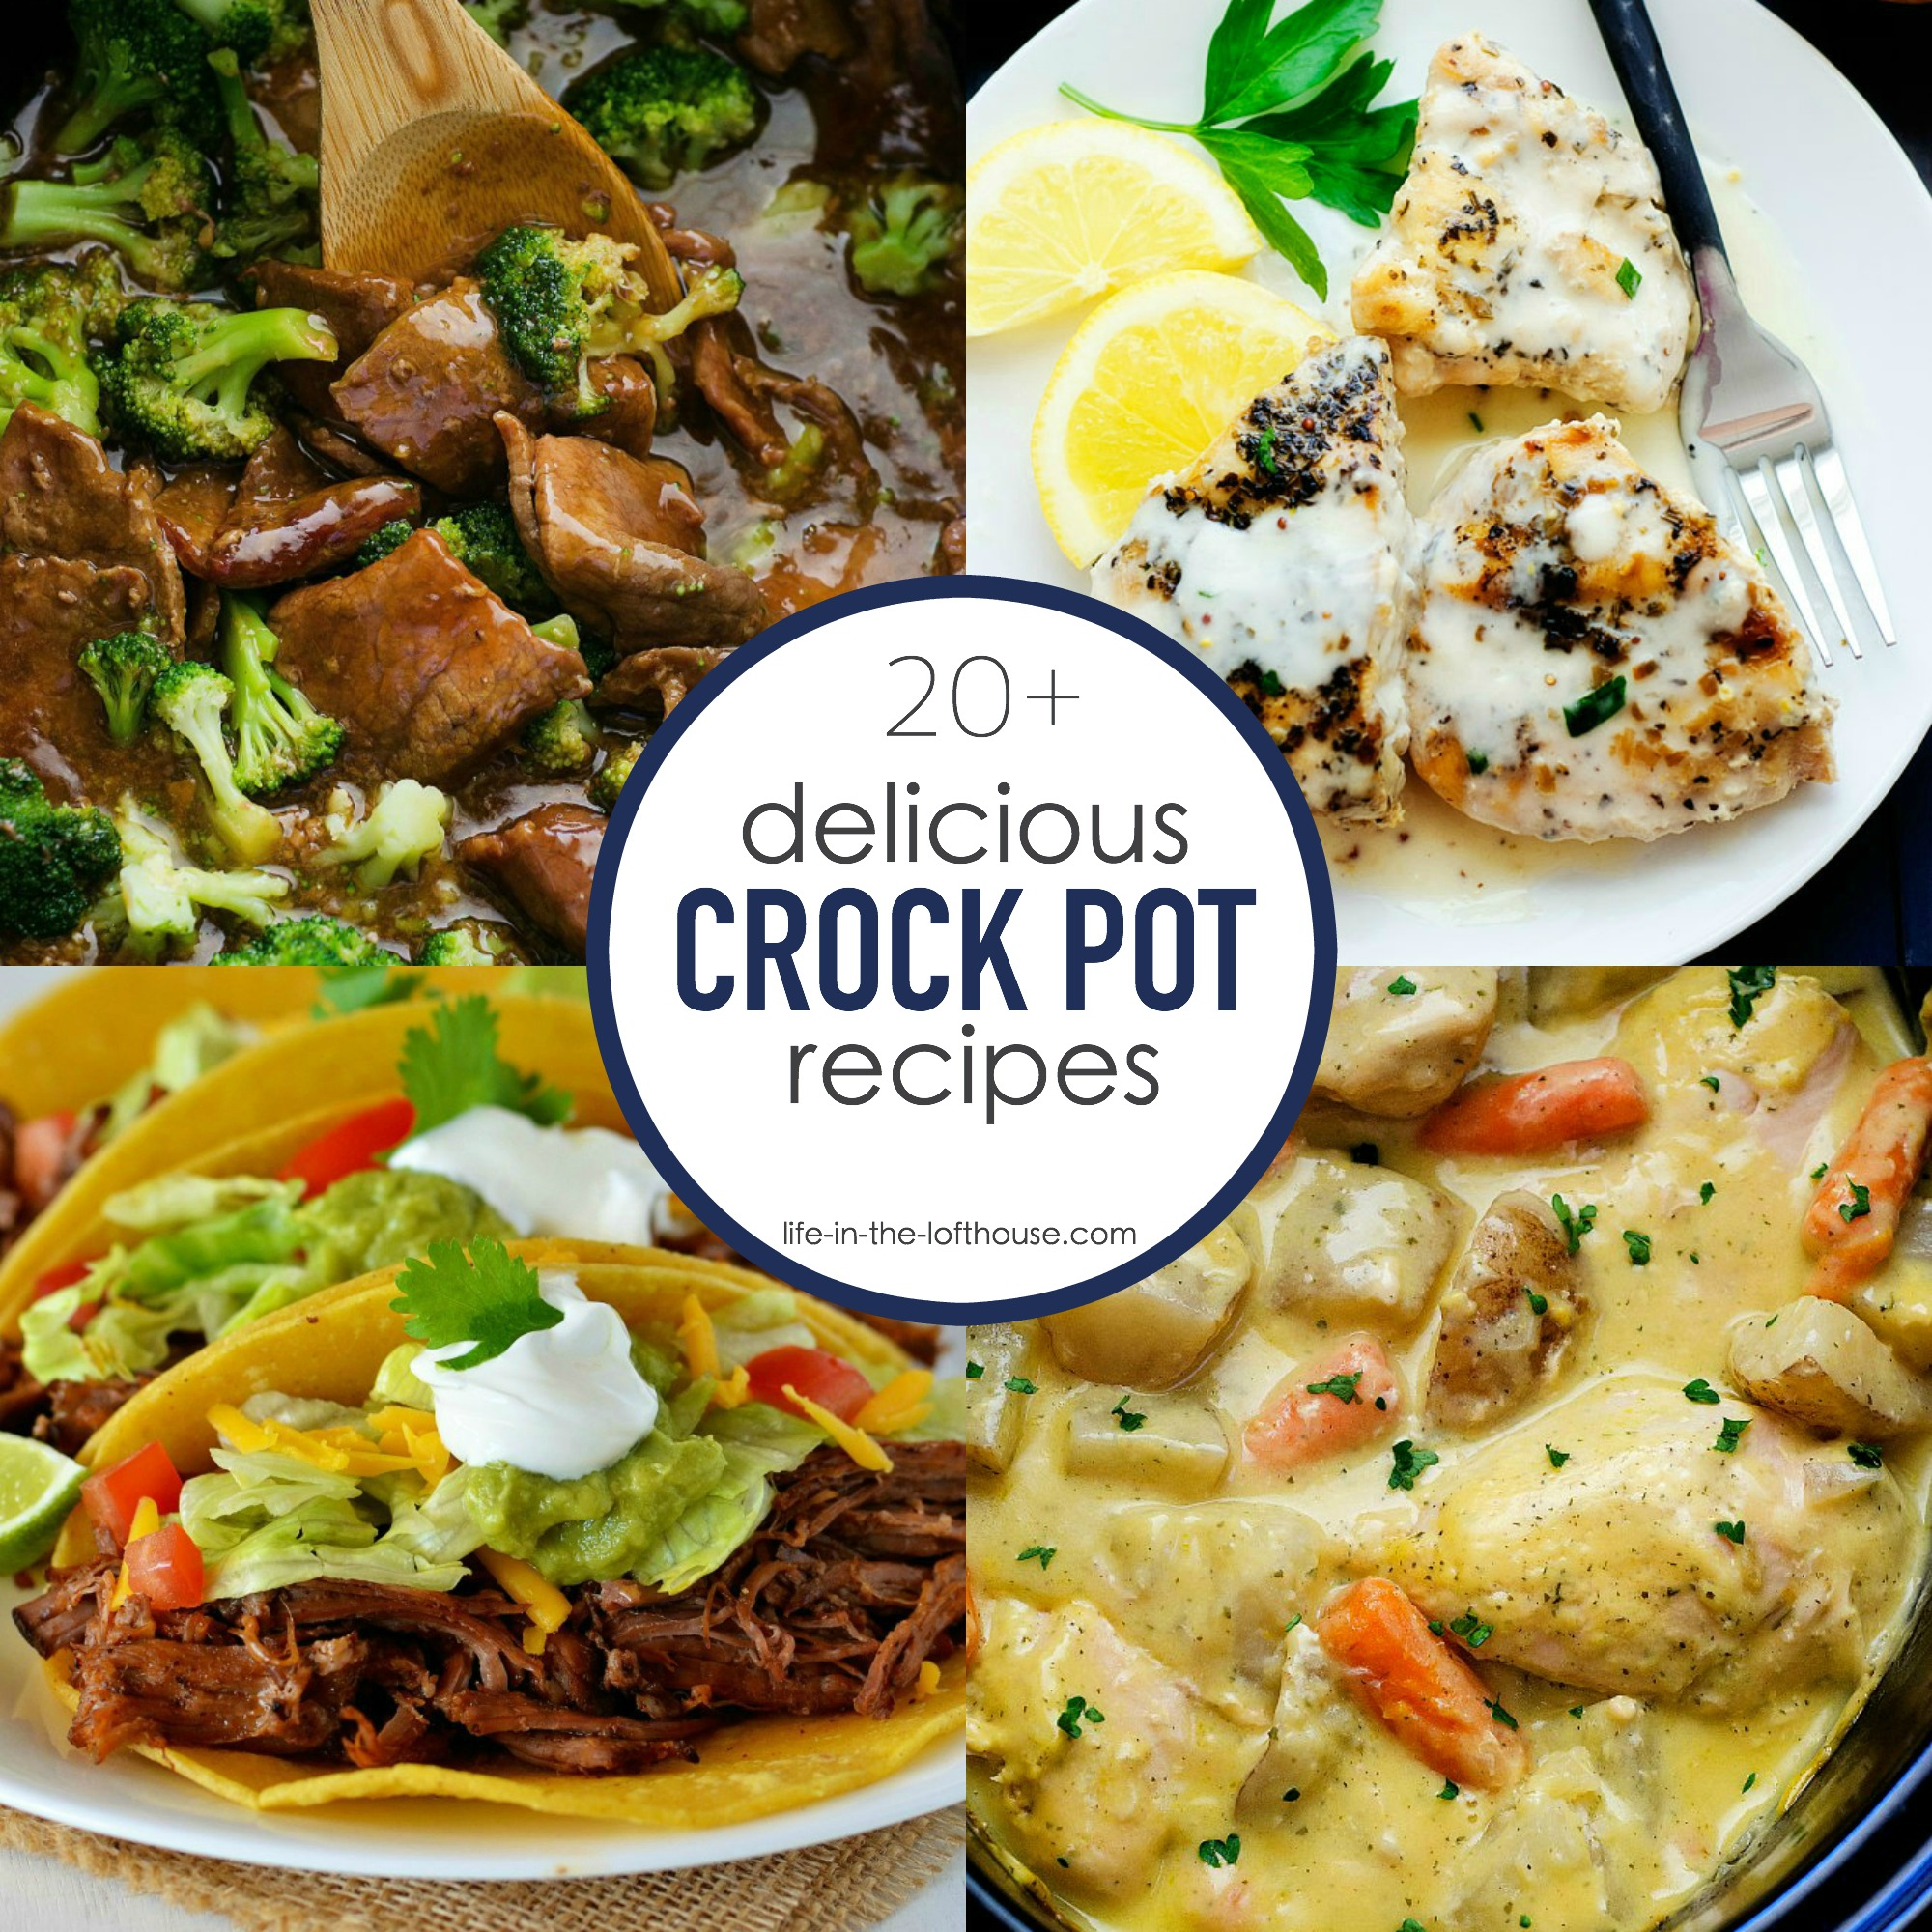 20+ Delicious Crock Pot Recipes